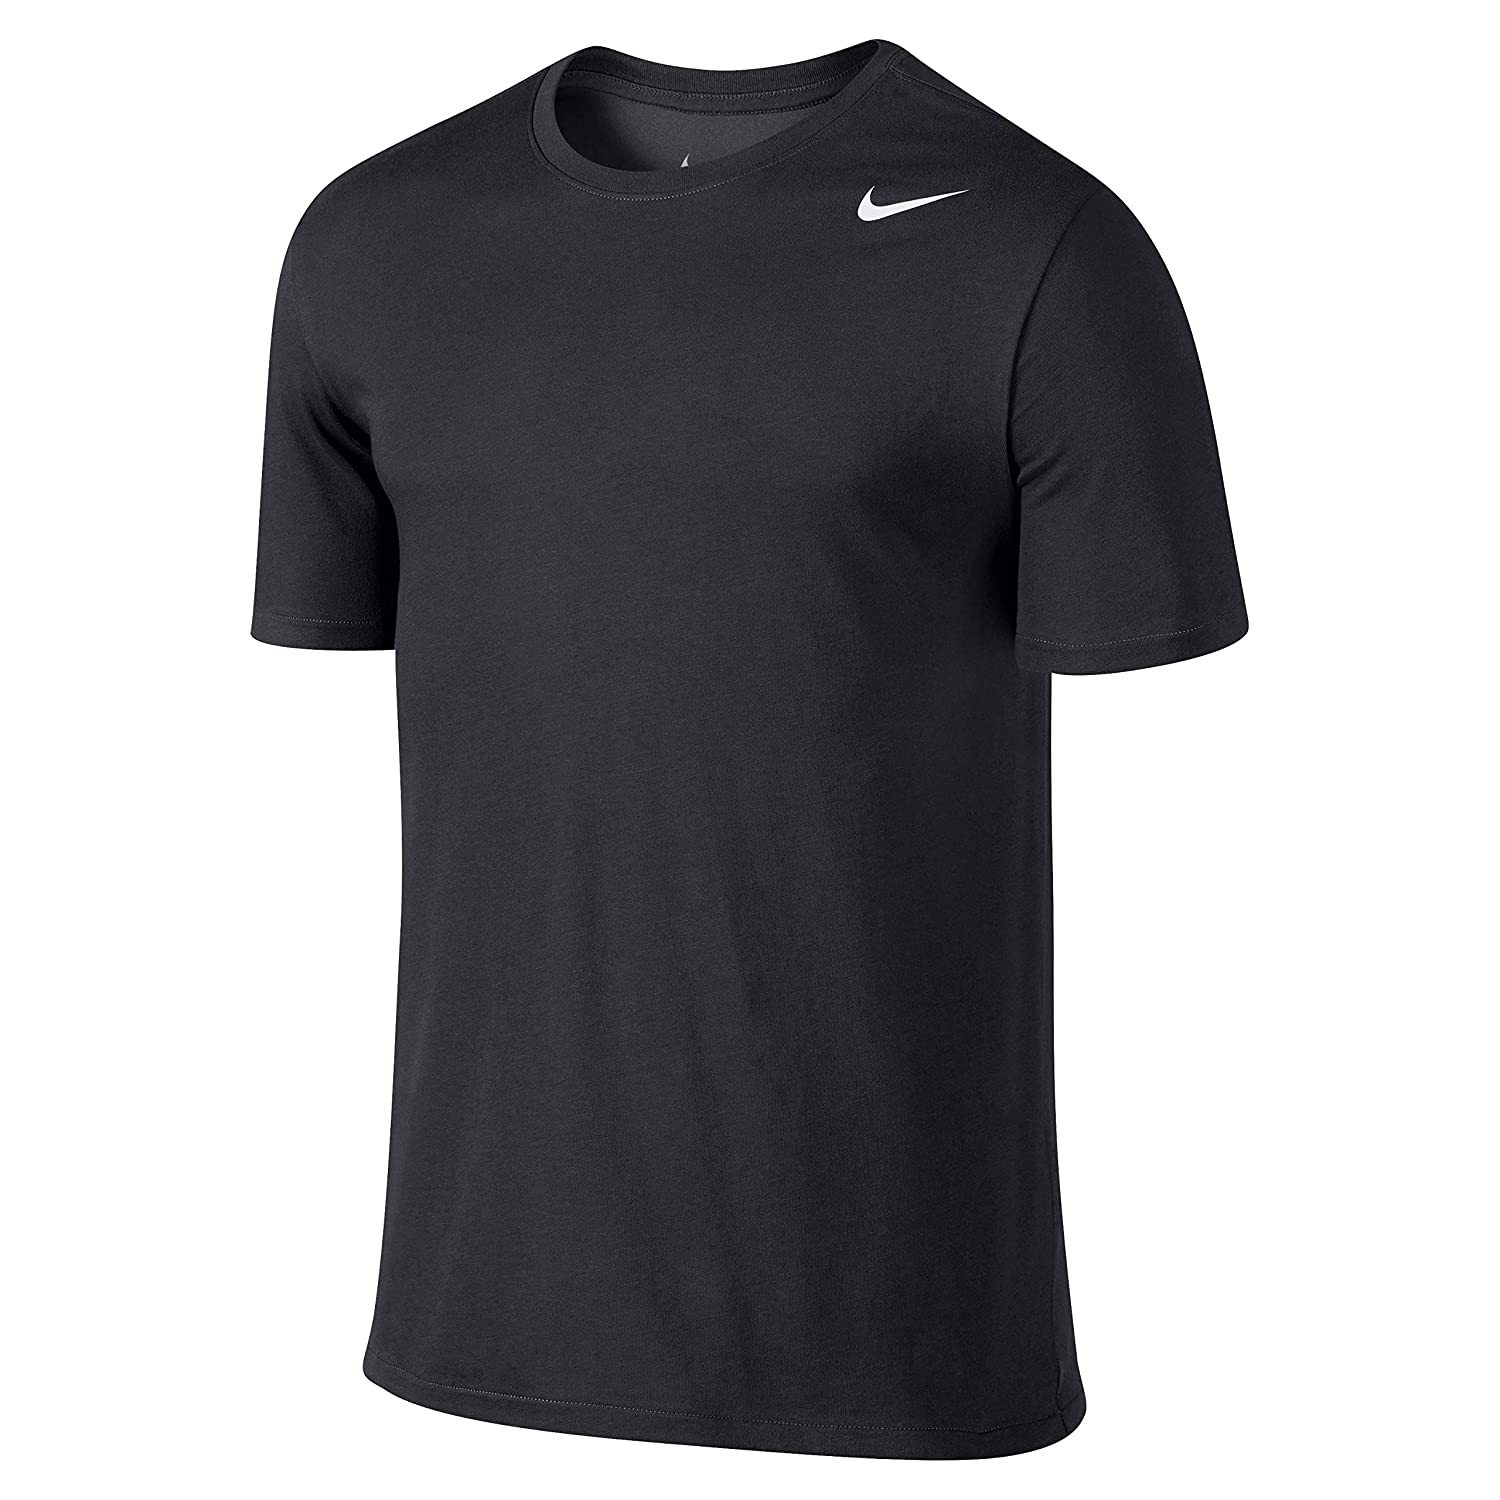 33cac78733978a Nike T Shirts Price List – EDGE Engineering and Consulting Limited